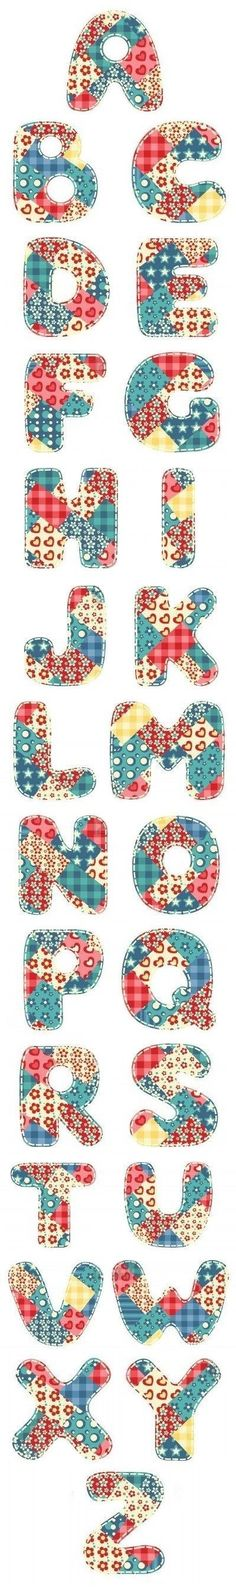 Discover thousands of images about Embroidery Baby Applique, Applique Patterns, Applique Designs, Quilt Patterns, Embroidery Designs, Sewing Patterns, Alphabet Letter Templates, Alphabet Symbols, Alphabet And Numbers